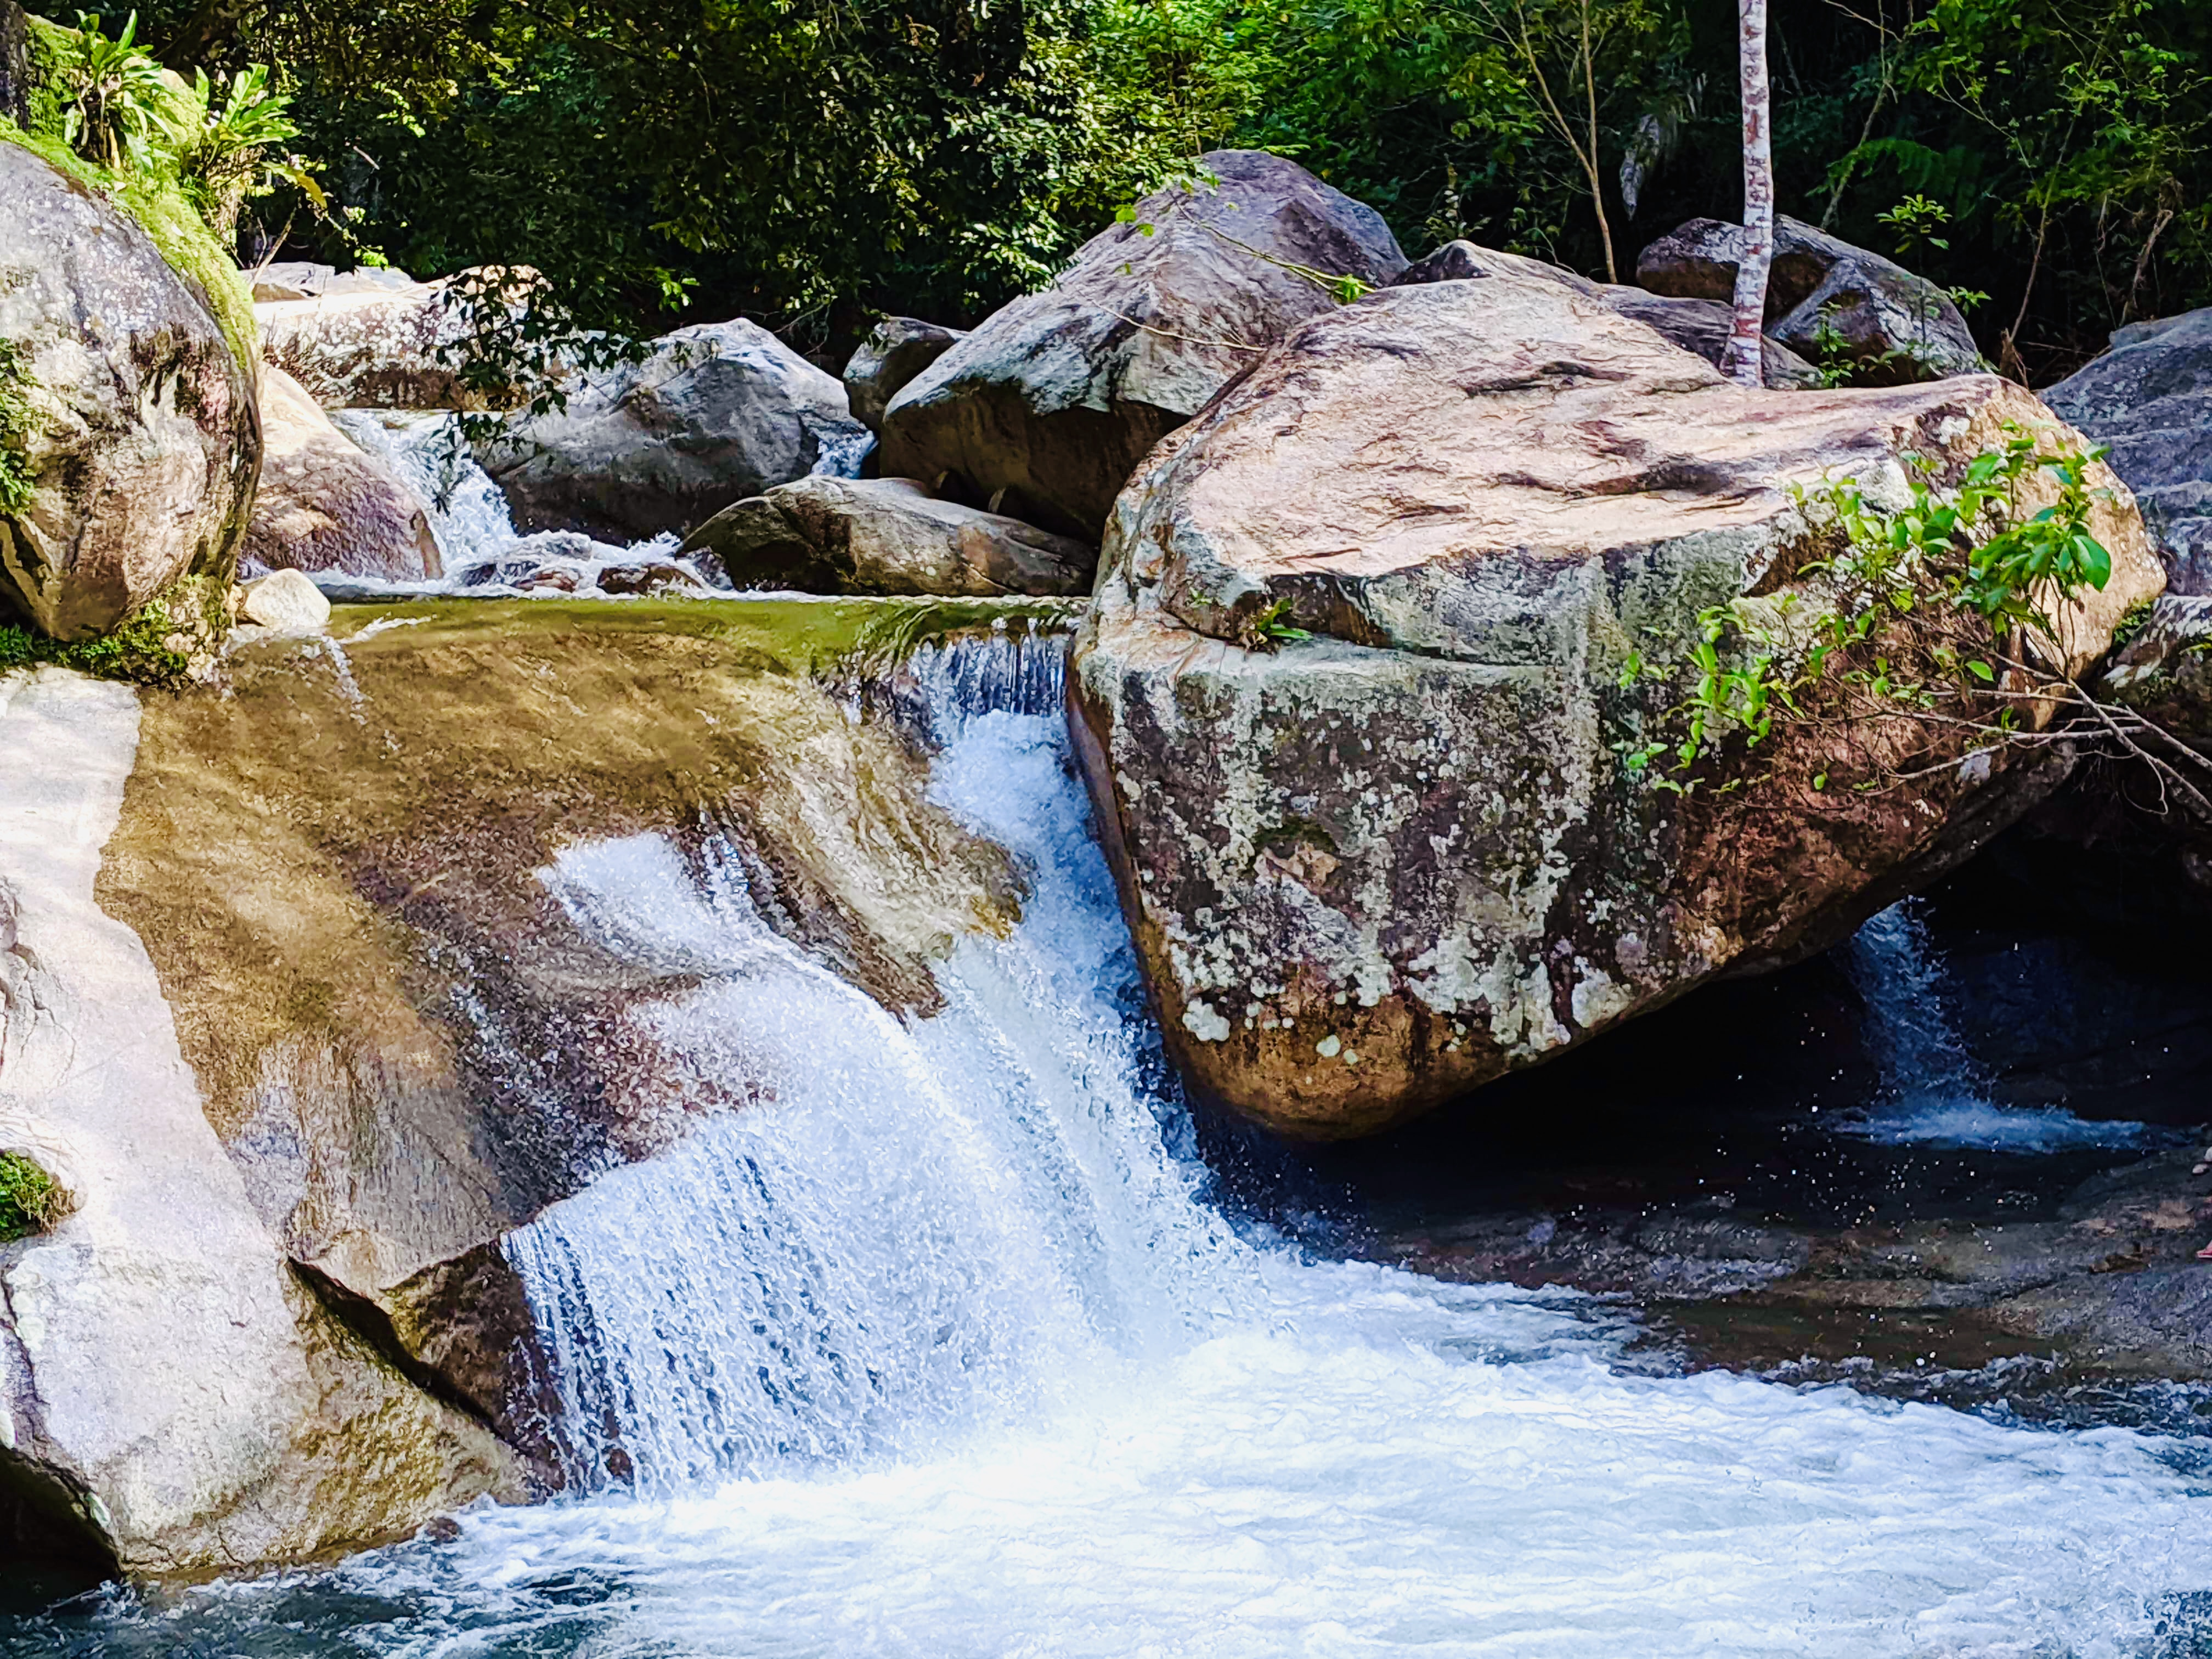 A natural rock water slide, where filming for the movie Predator took place